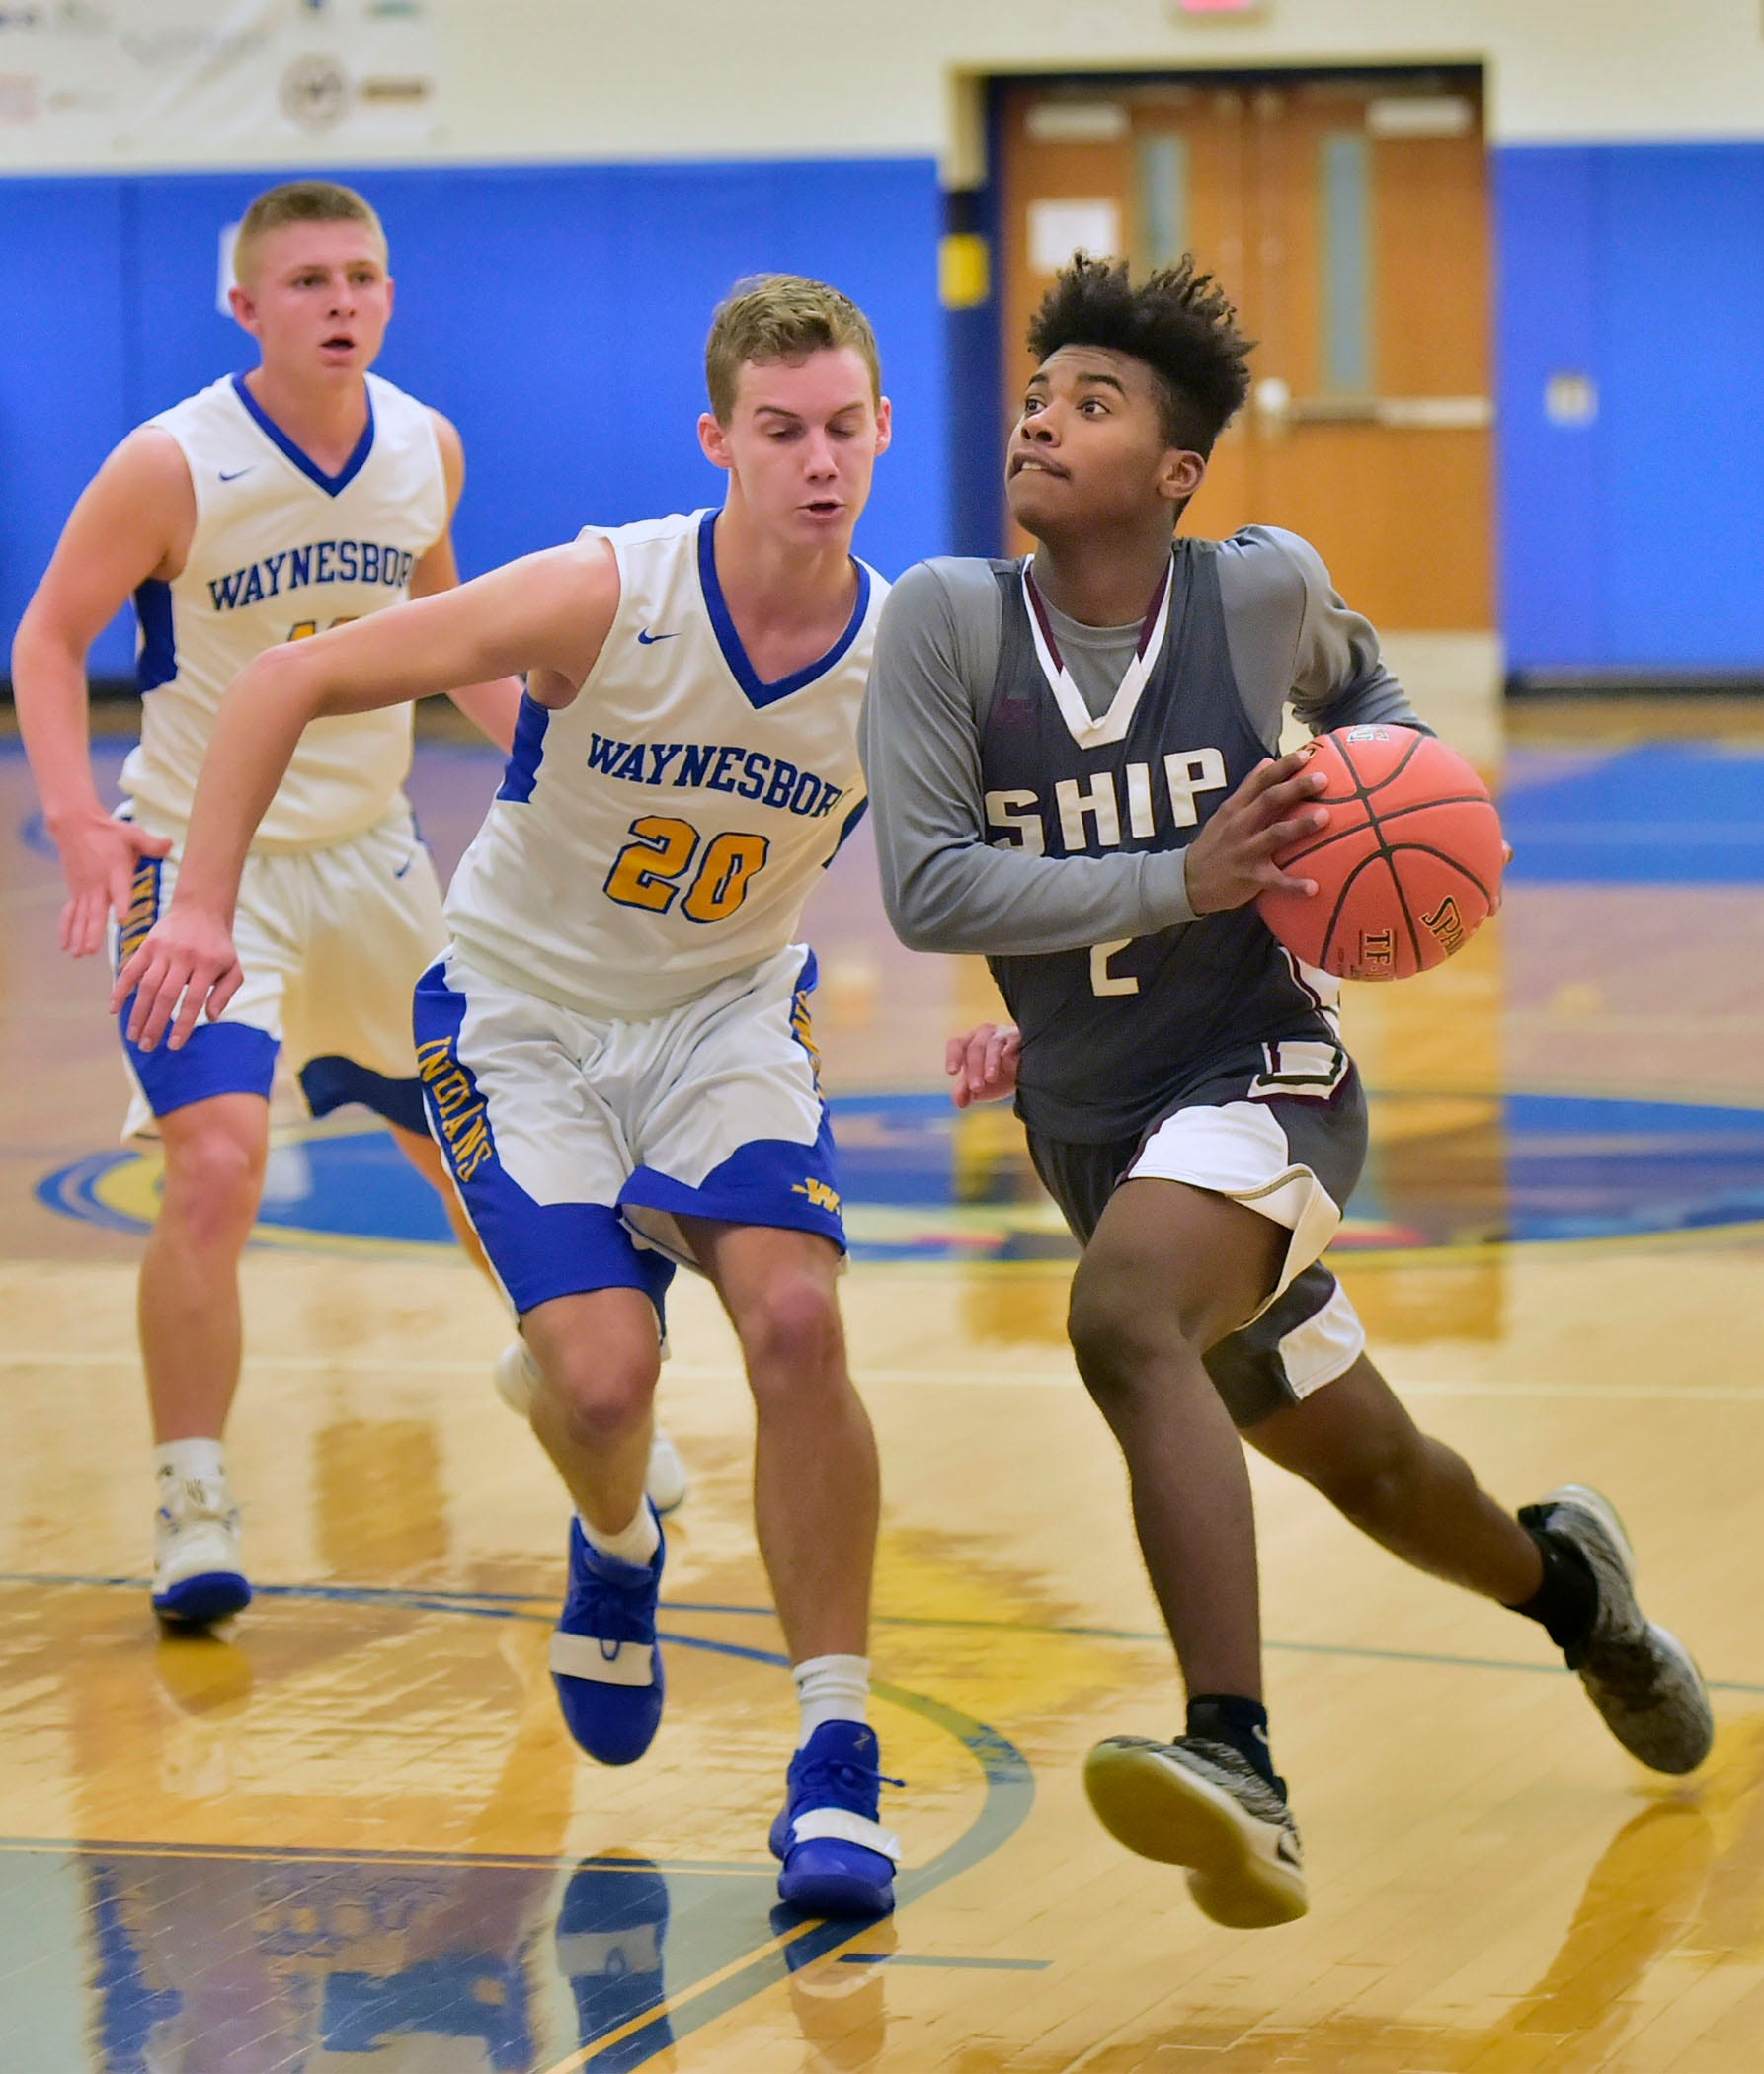 Shippensburg's Jayden Statum drives to the basket on Tuesday, December 18, 2018. Waynesboro defeated Shippensburg 72-59 during a home game.